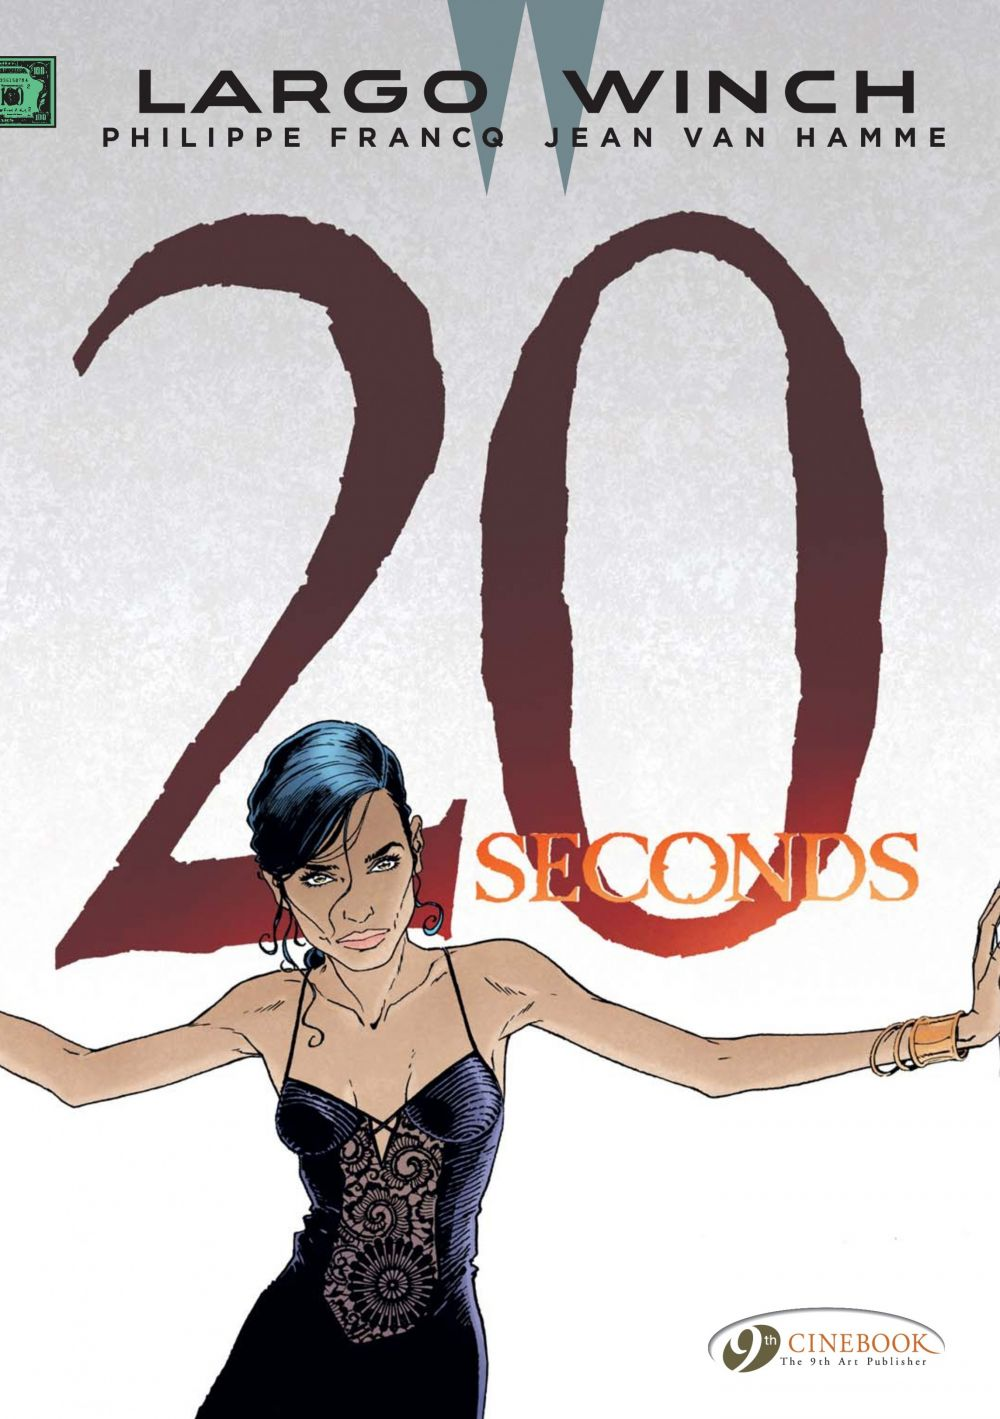 Largo Winch - Volume 16 - 20 seconds